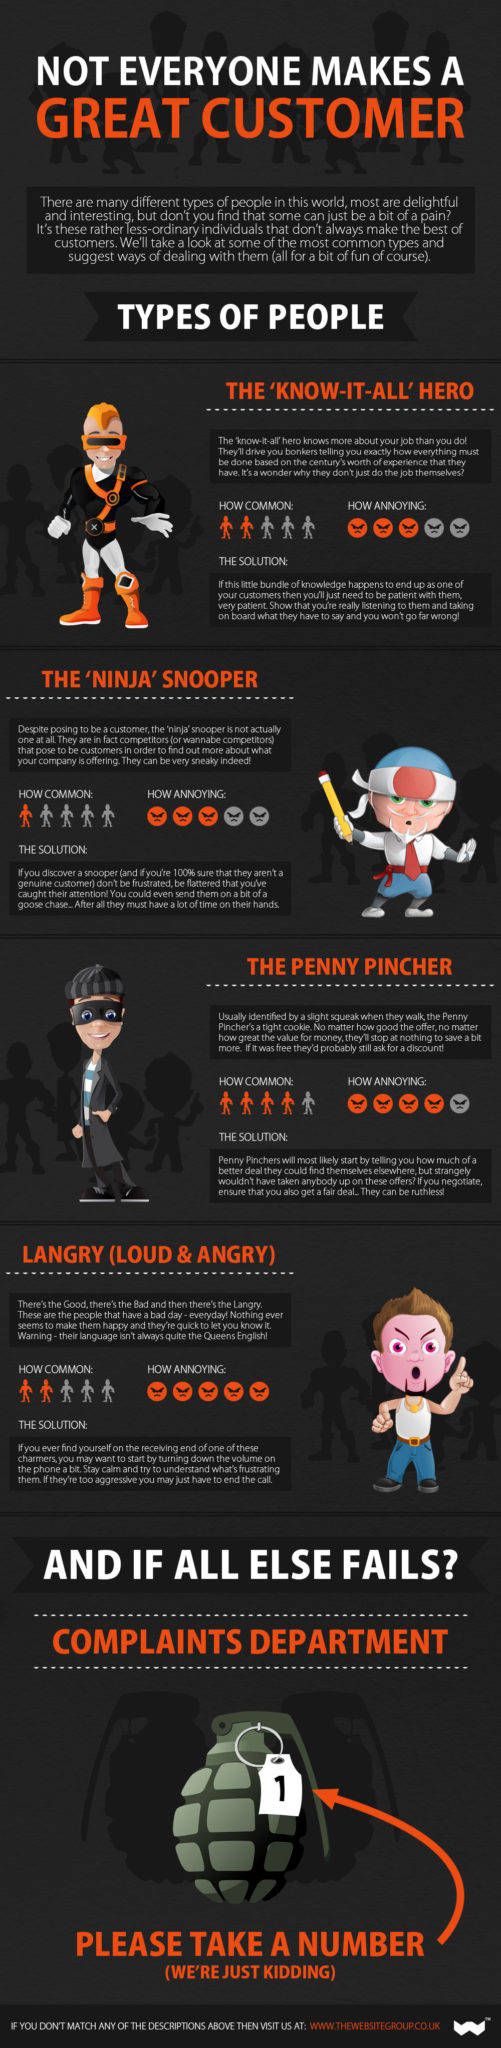 Great Customer Infographic